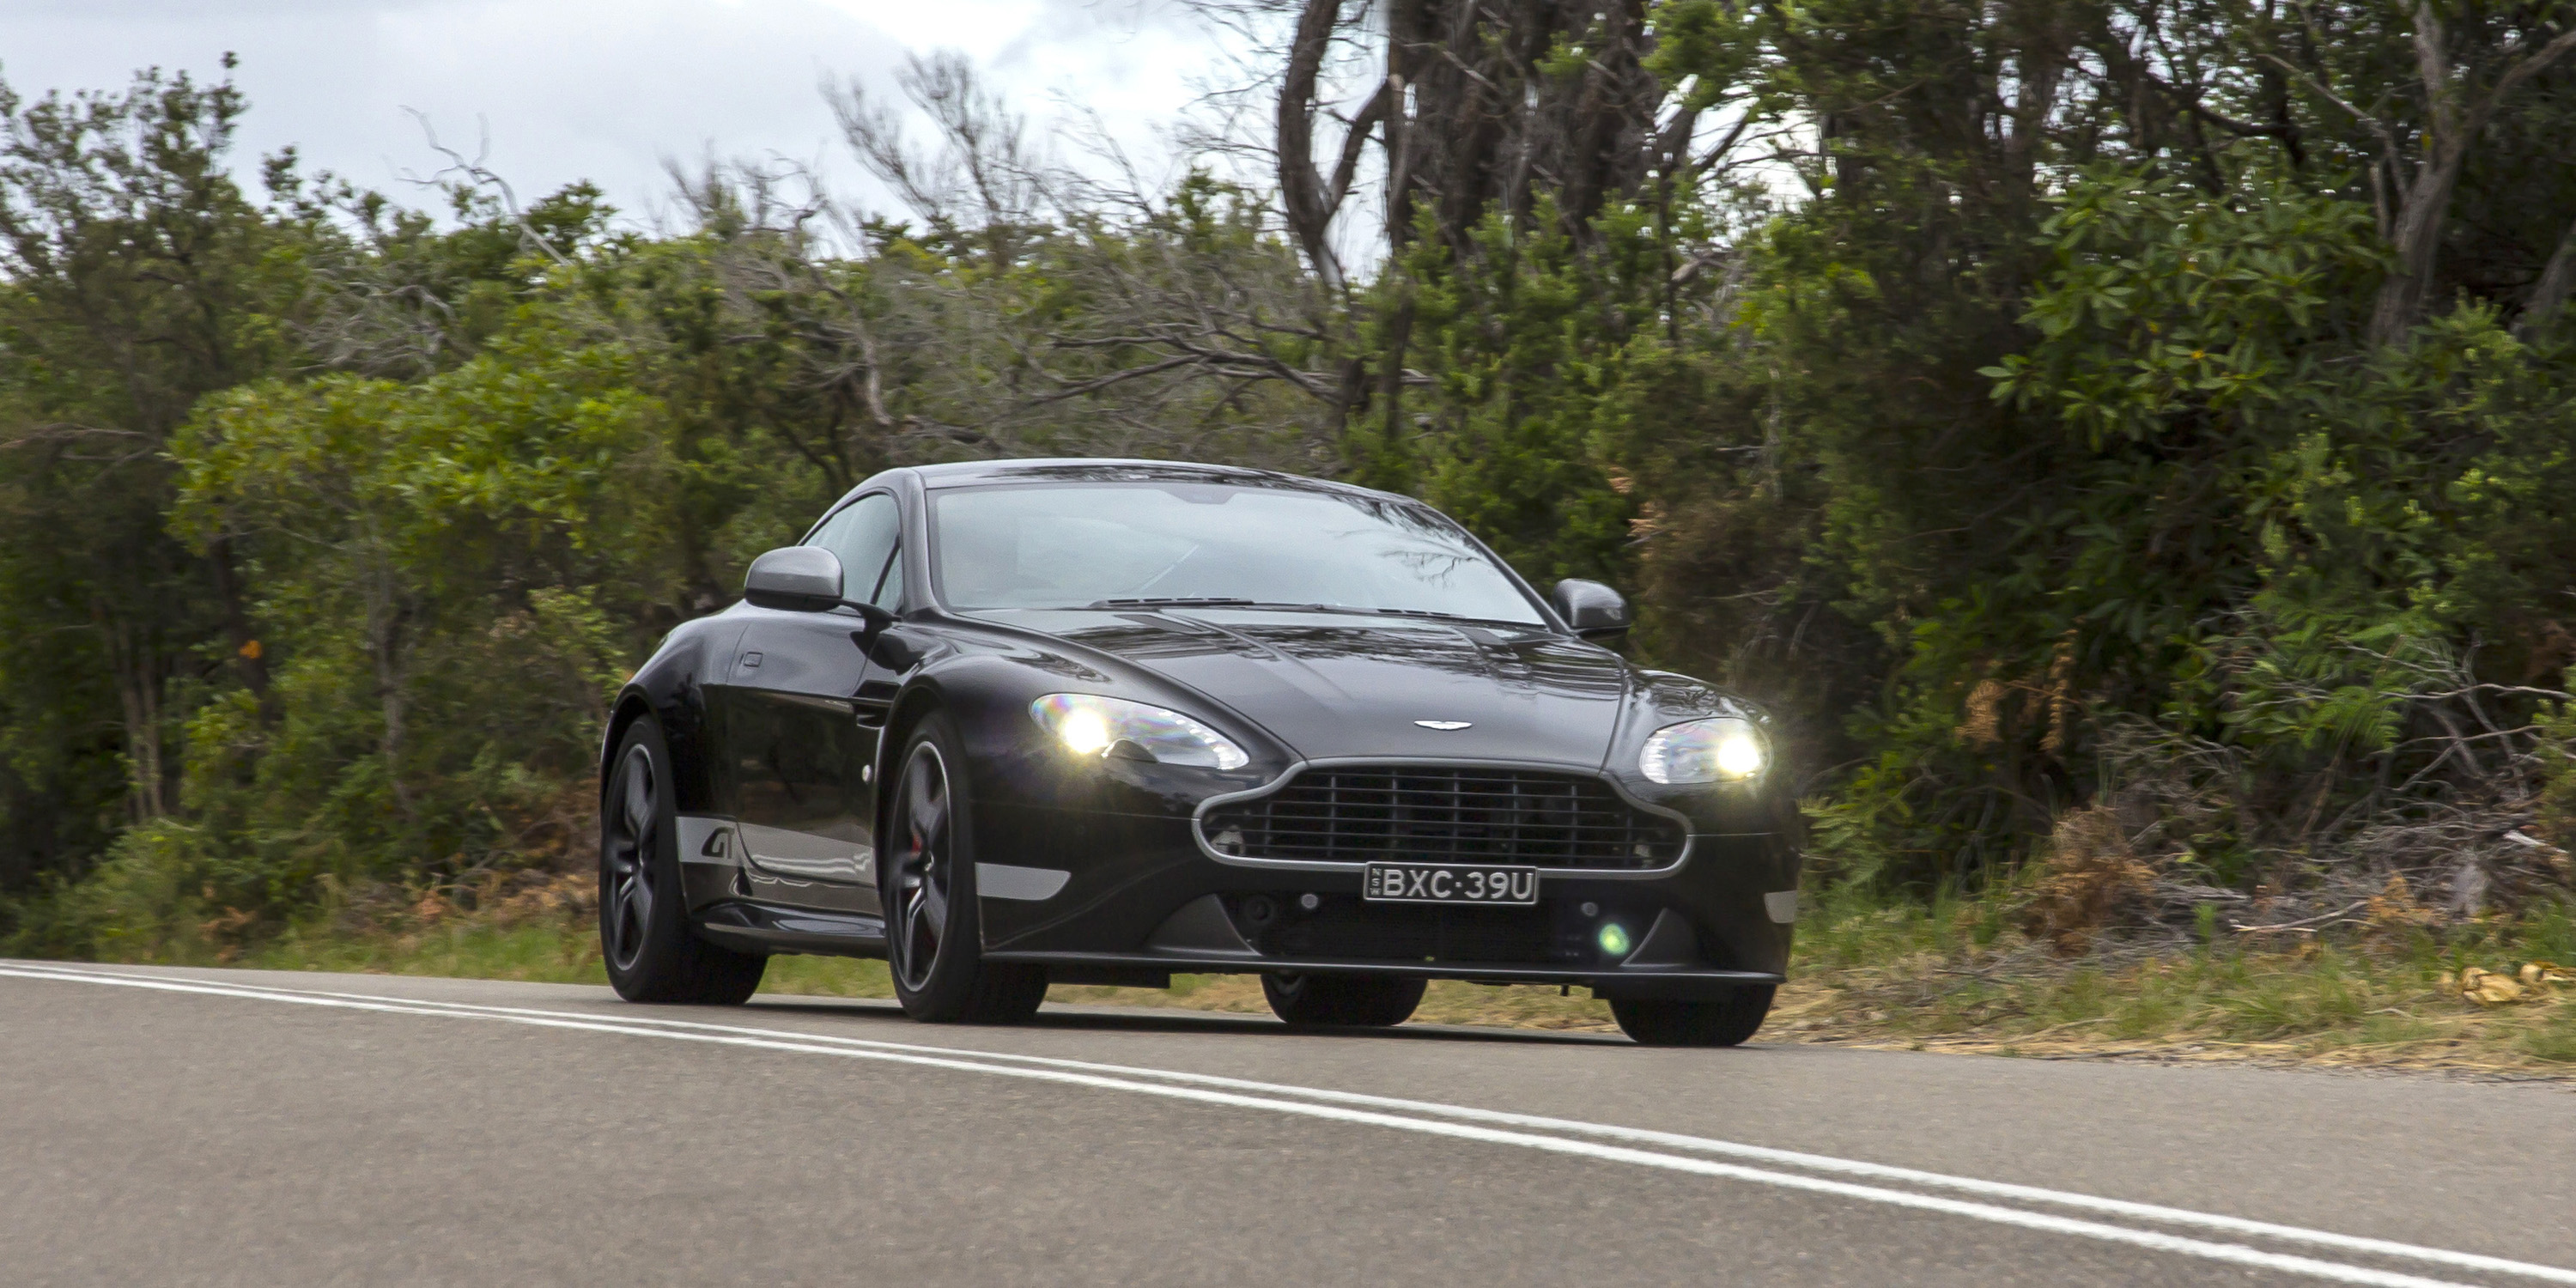 2016 Aston Martin Vantage Gt Test Drive (View 14 of 25)